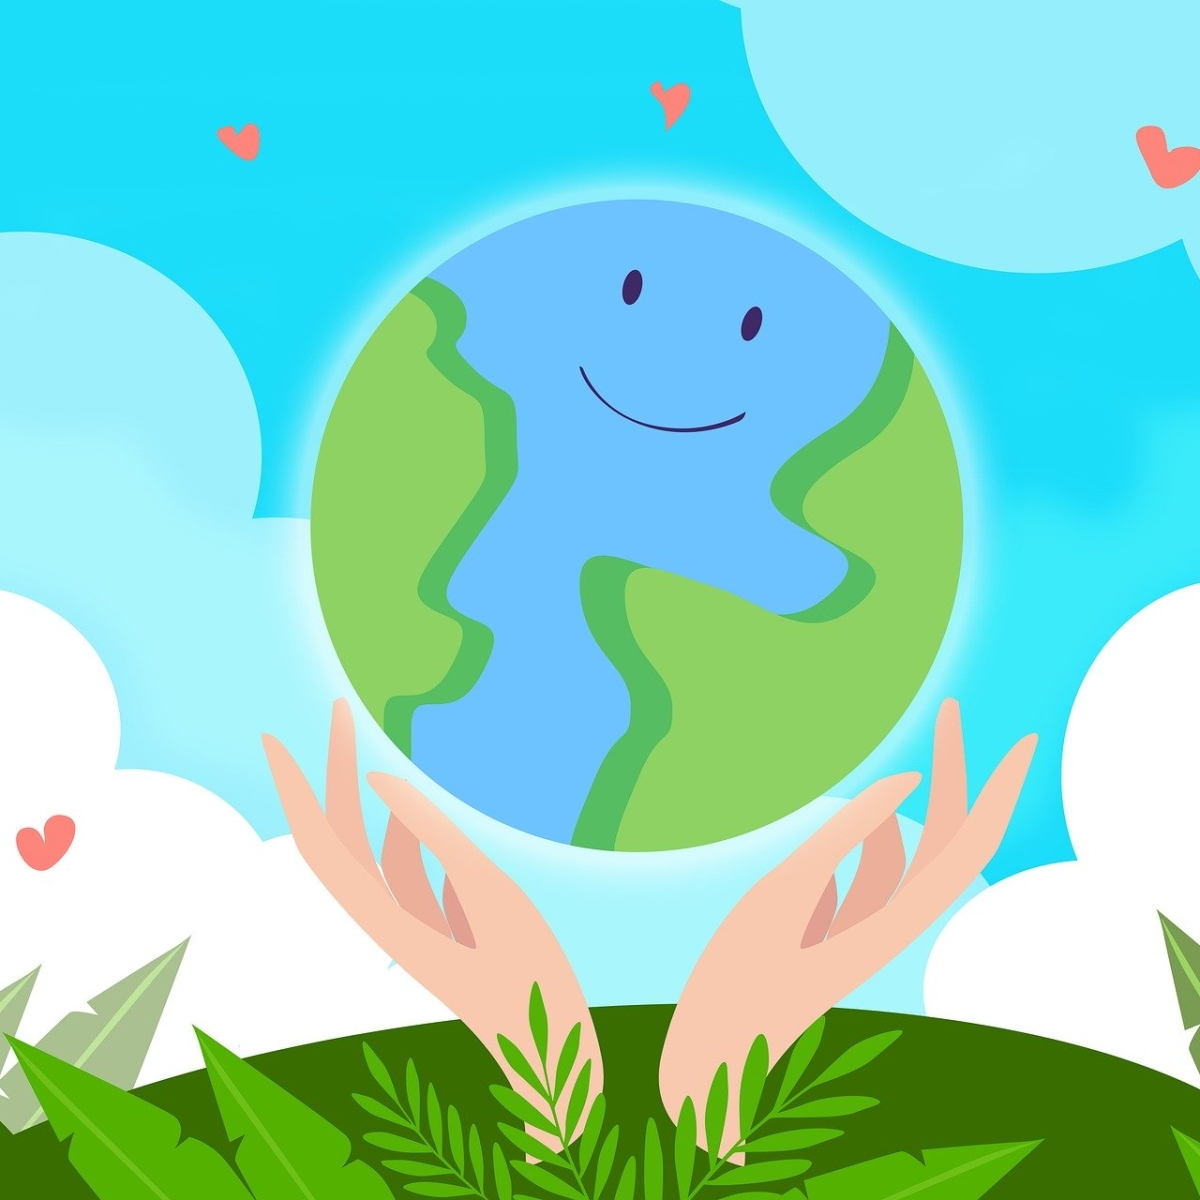 Earth Day 2020: Earth recharges itself naturally!